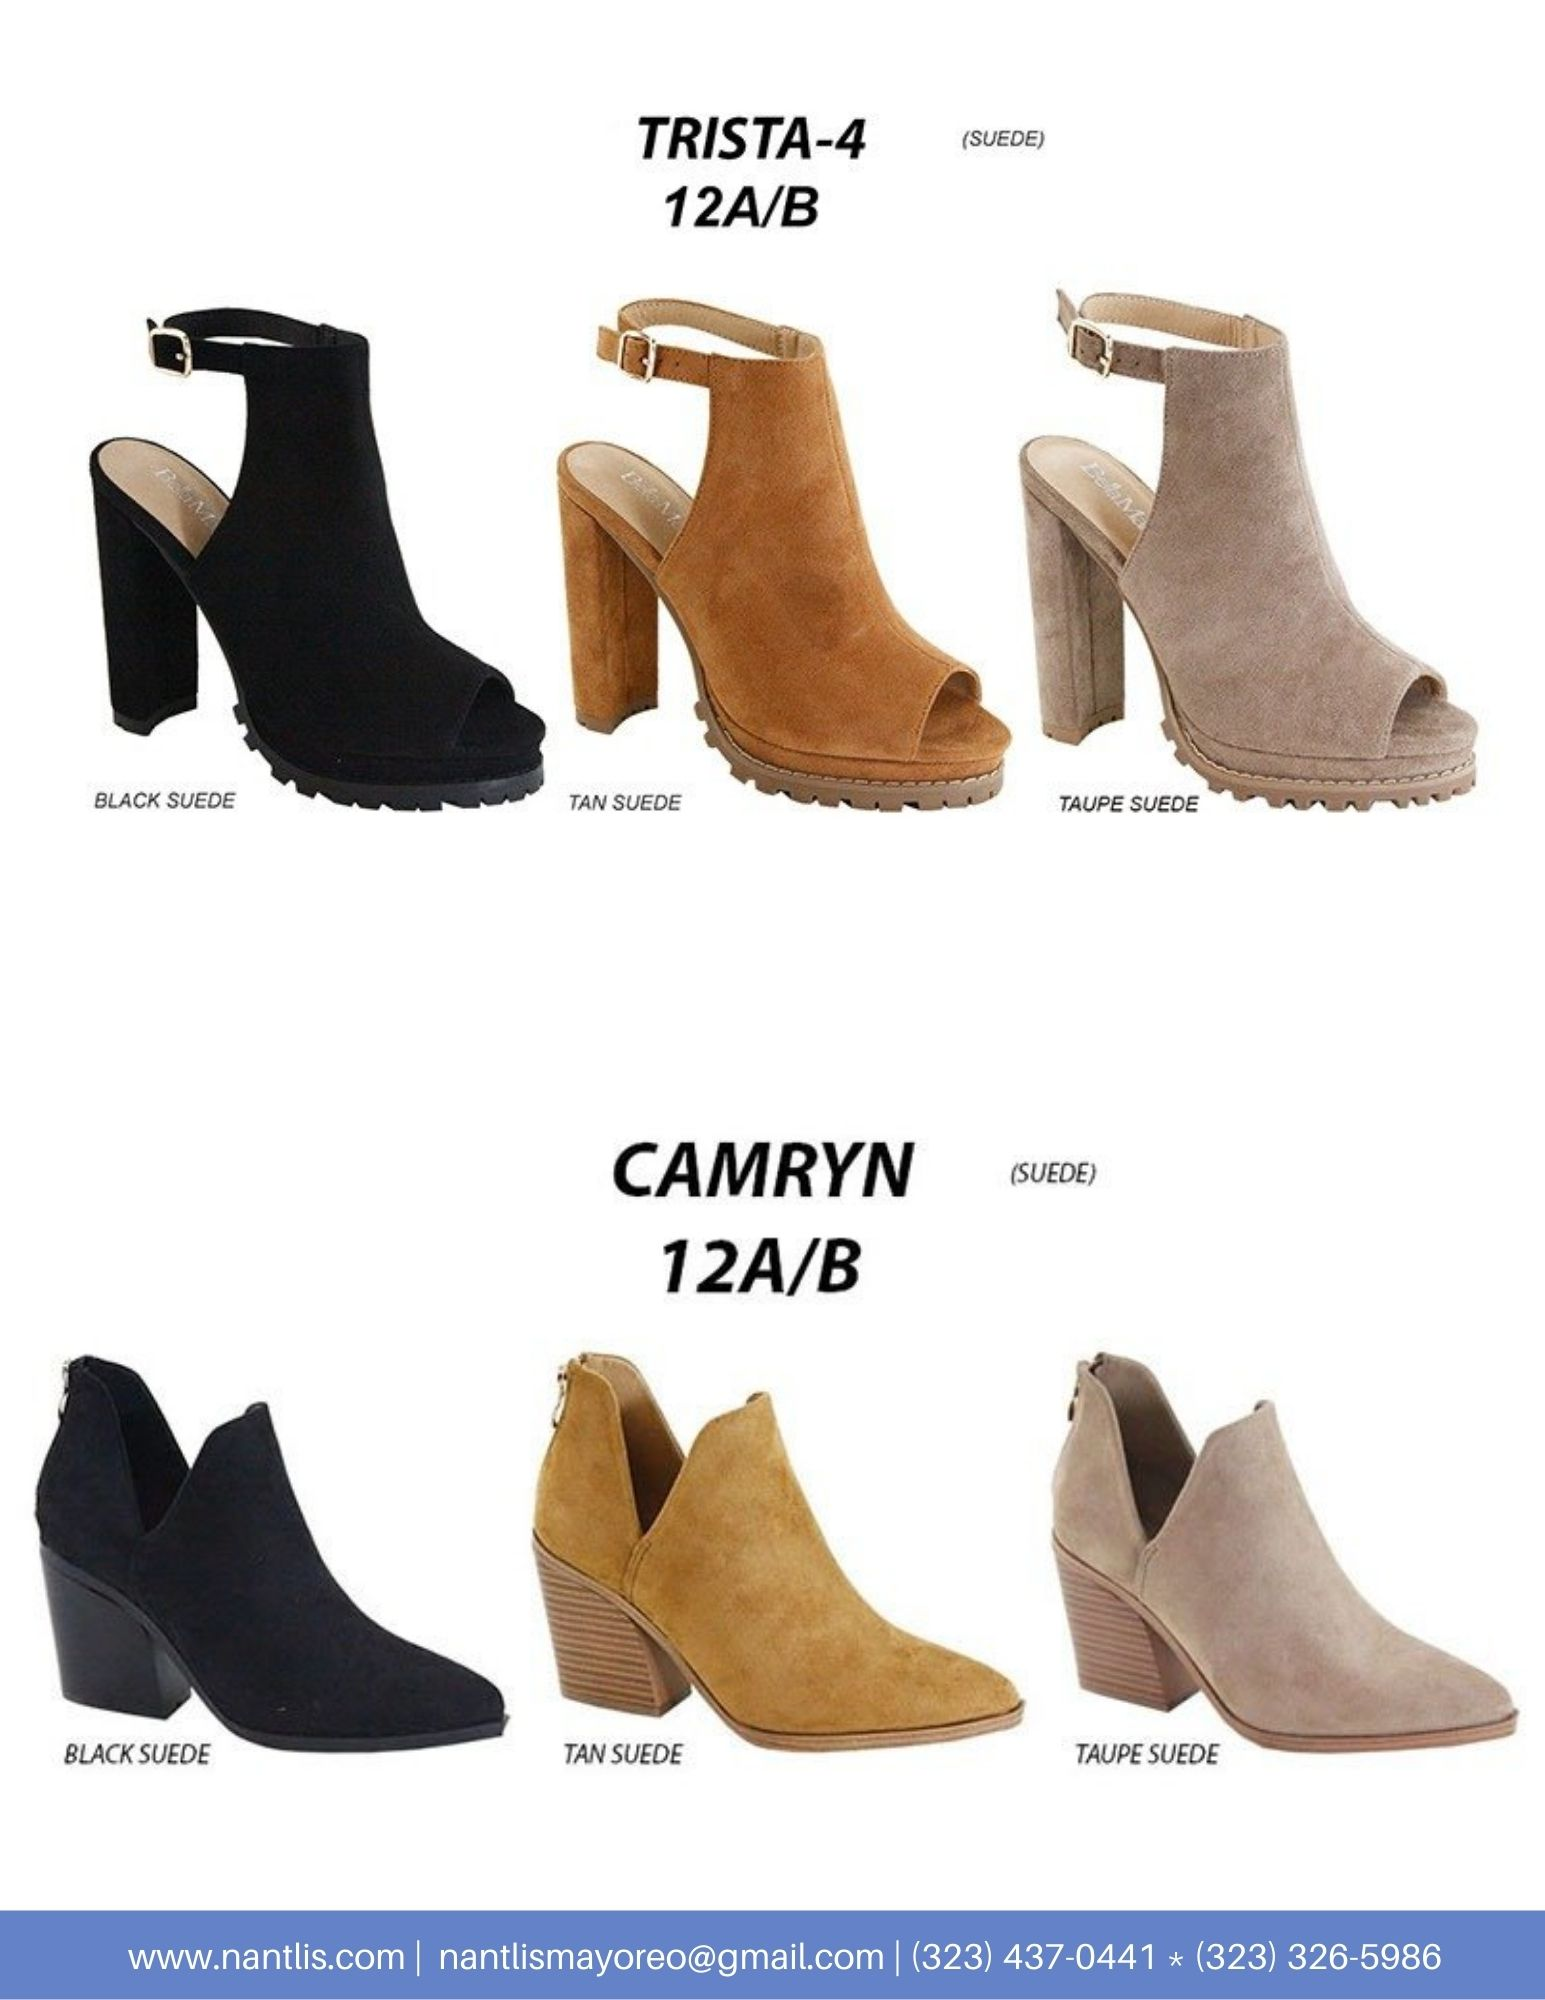 Nantlis Vol AN22 Botas Mujer mayoreo Catalogo Wholesale boots for women page 09